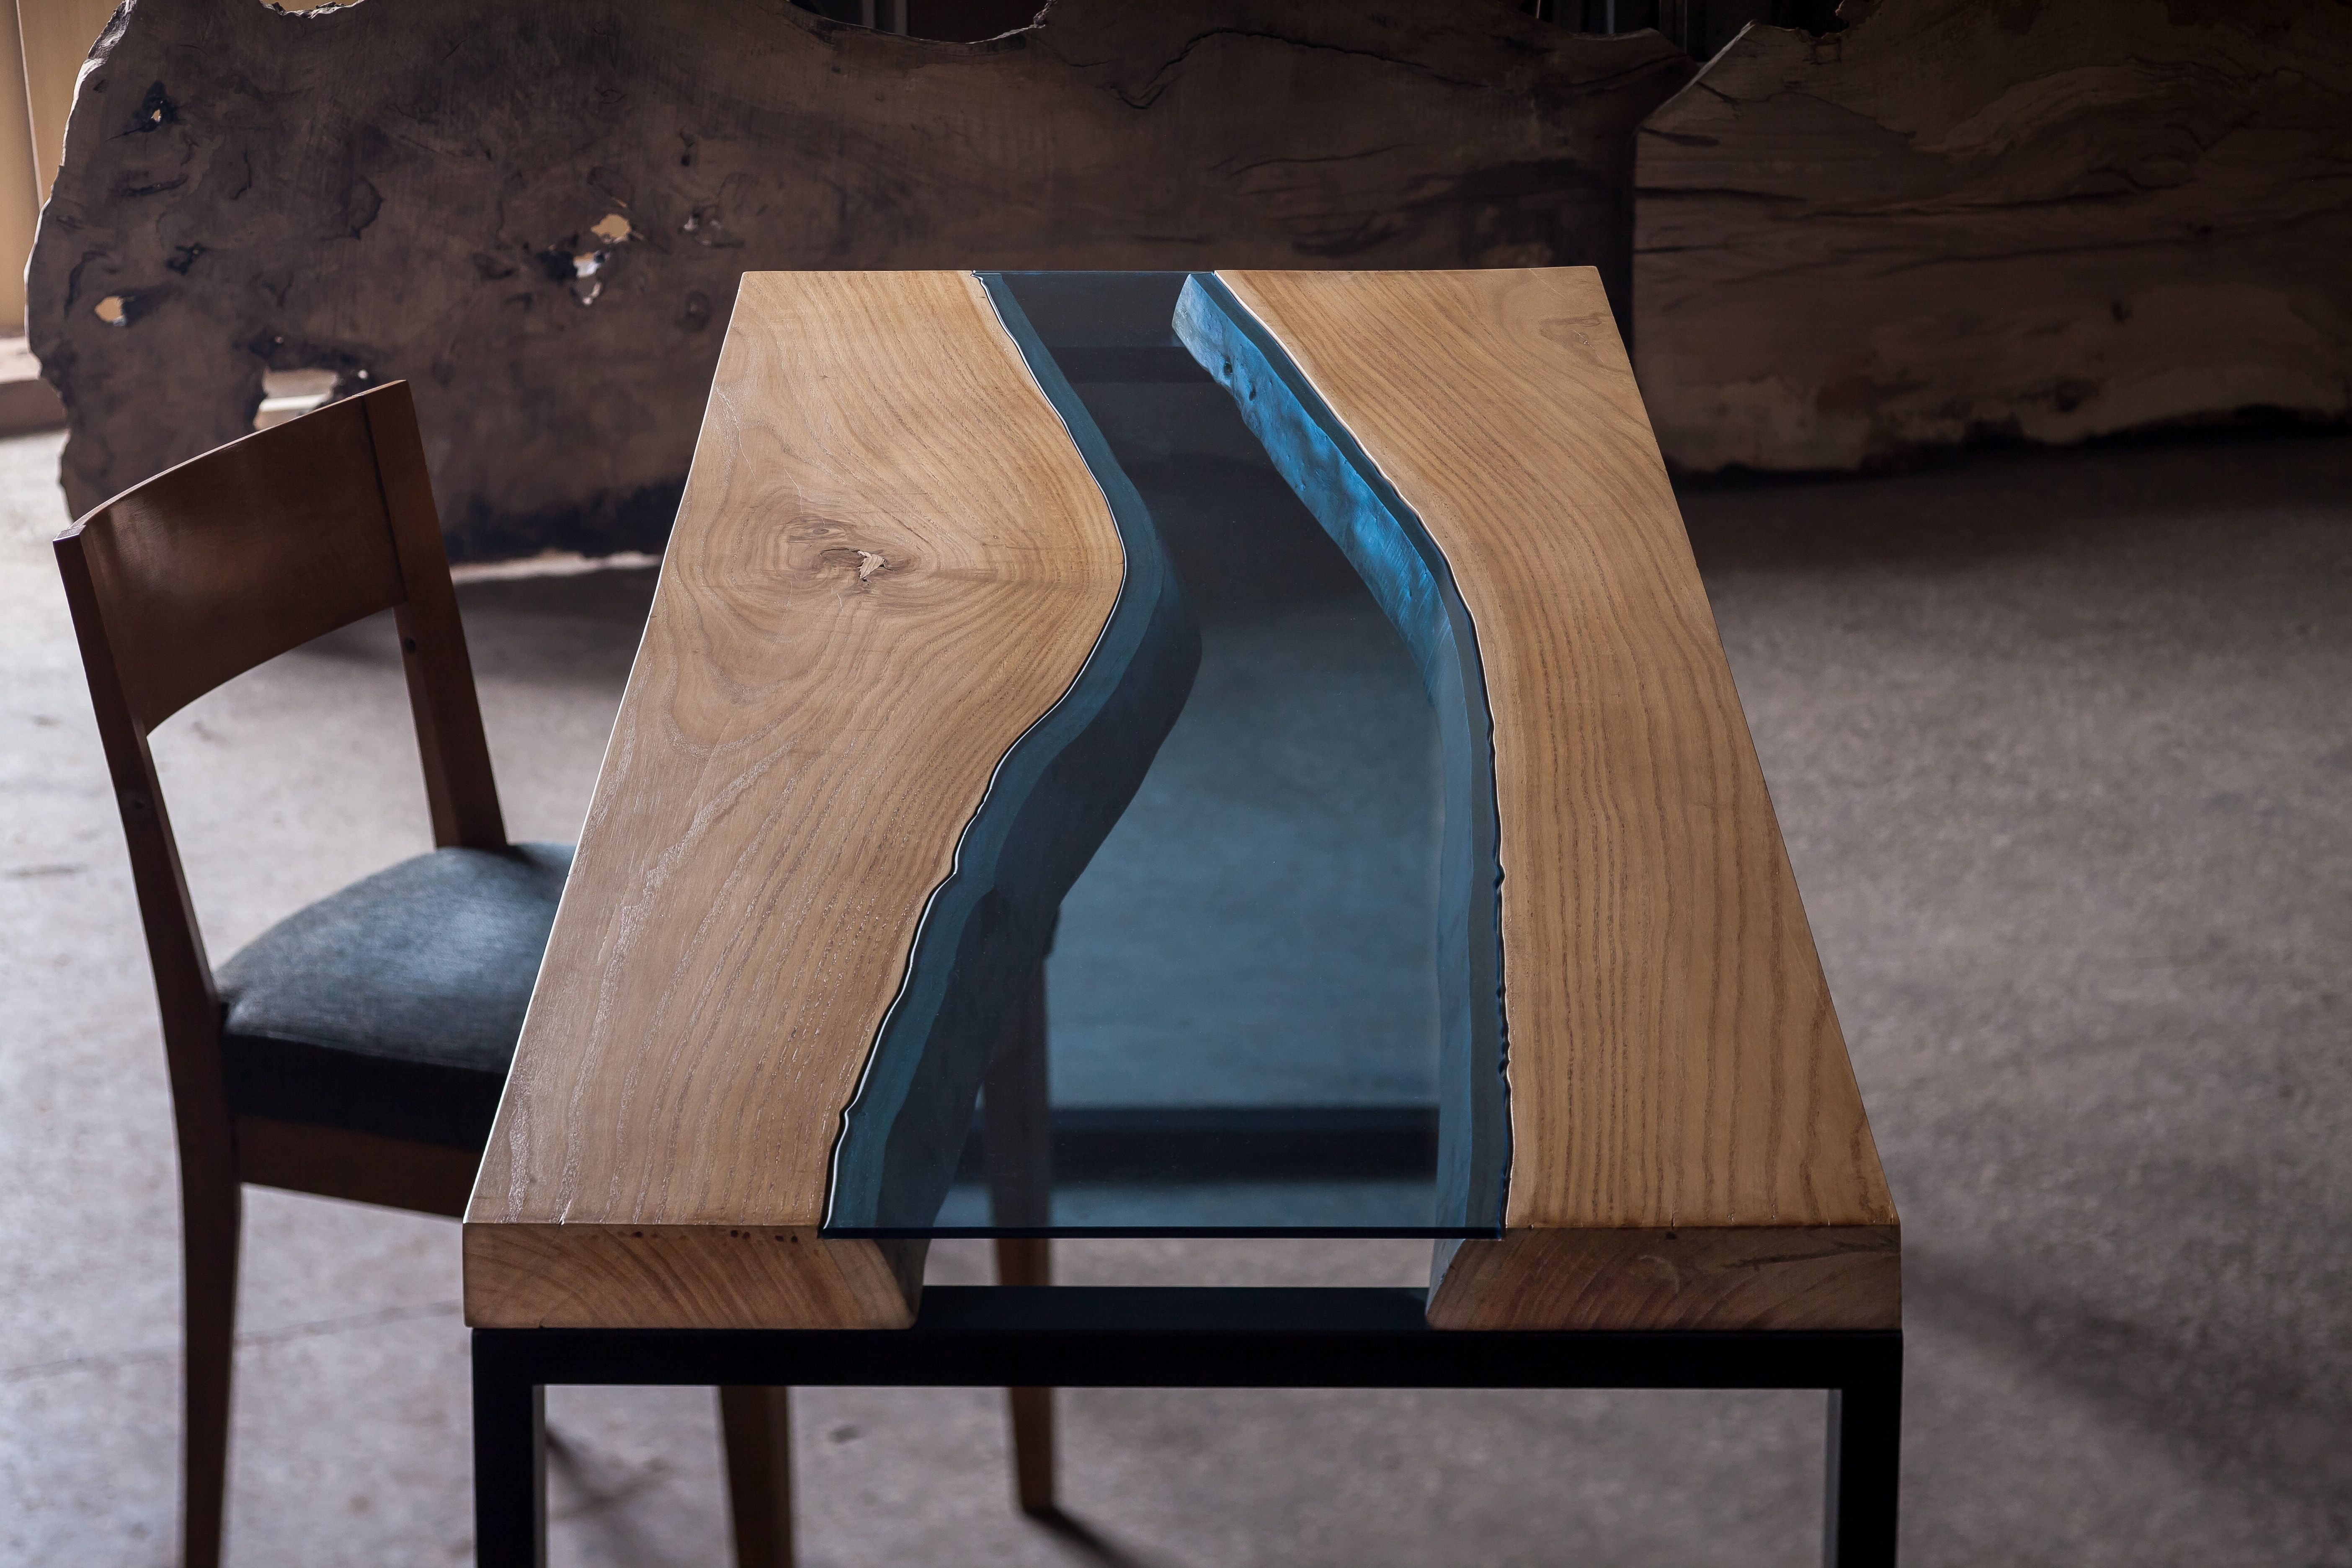 Aqua dining table made from oak tree and blue glass Available